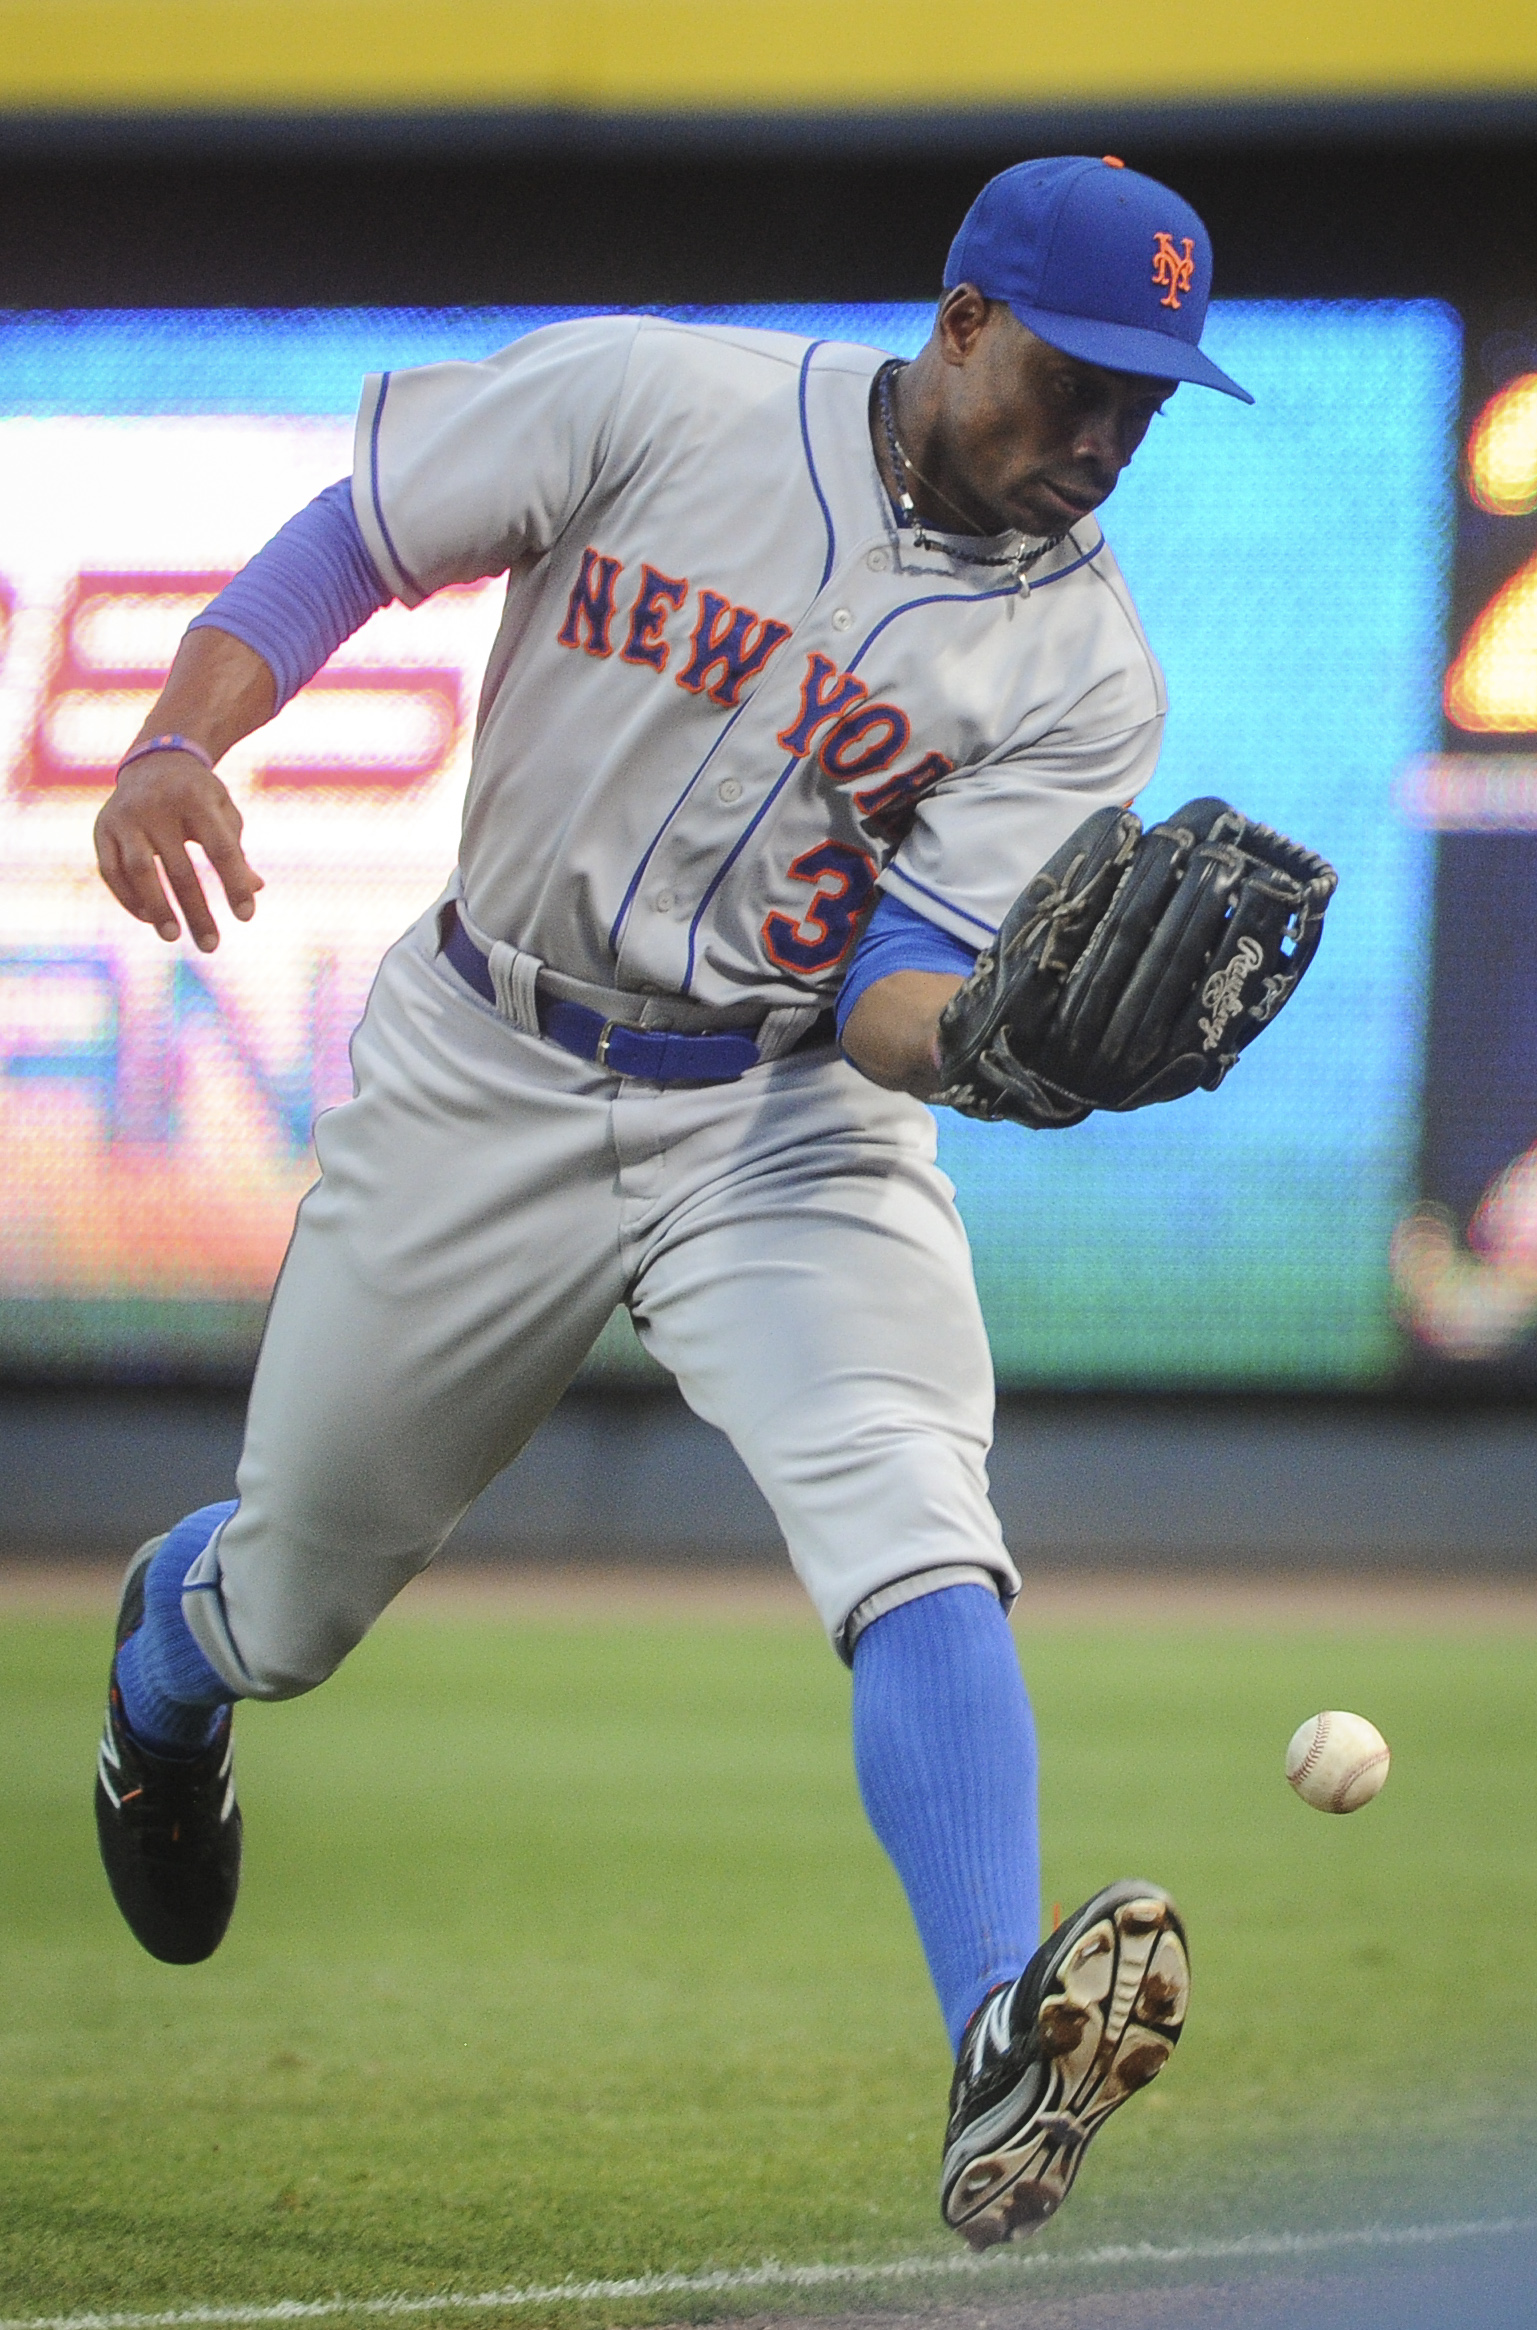 New York Mets right fielder Curtis Granderson lets a ball off the bat of Atlanta Braves' Chris Johnson hit the ground to allow a double during the fourth inning of a baseball game, Friday, June 19, 2015, in Atlanta. (AP Photo/John Amis )